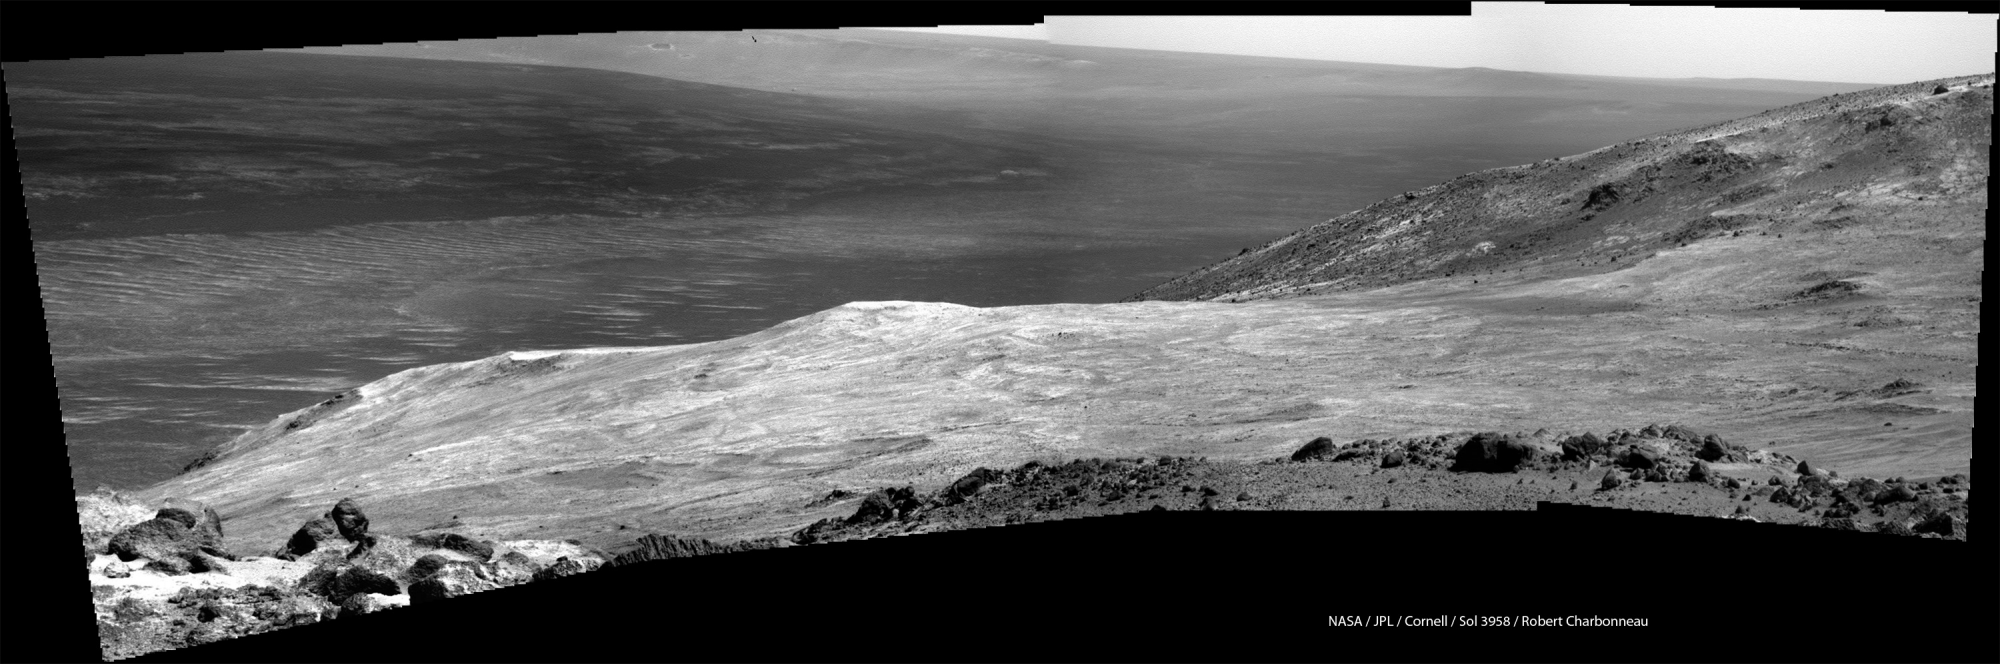 5ba38657ba0e4_395812mars2015MValley.thumb.png.150ca1d838aae6d60917d1f888d42675.png